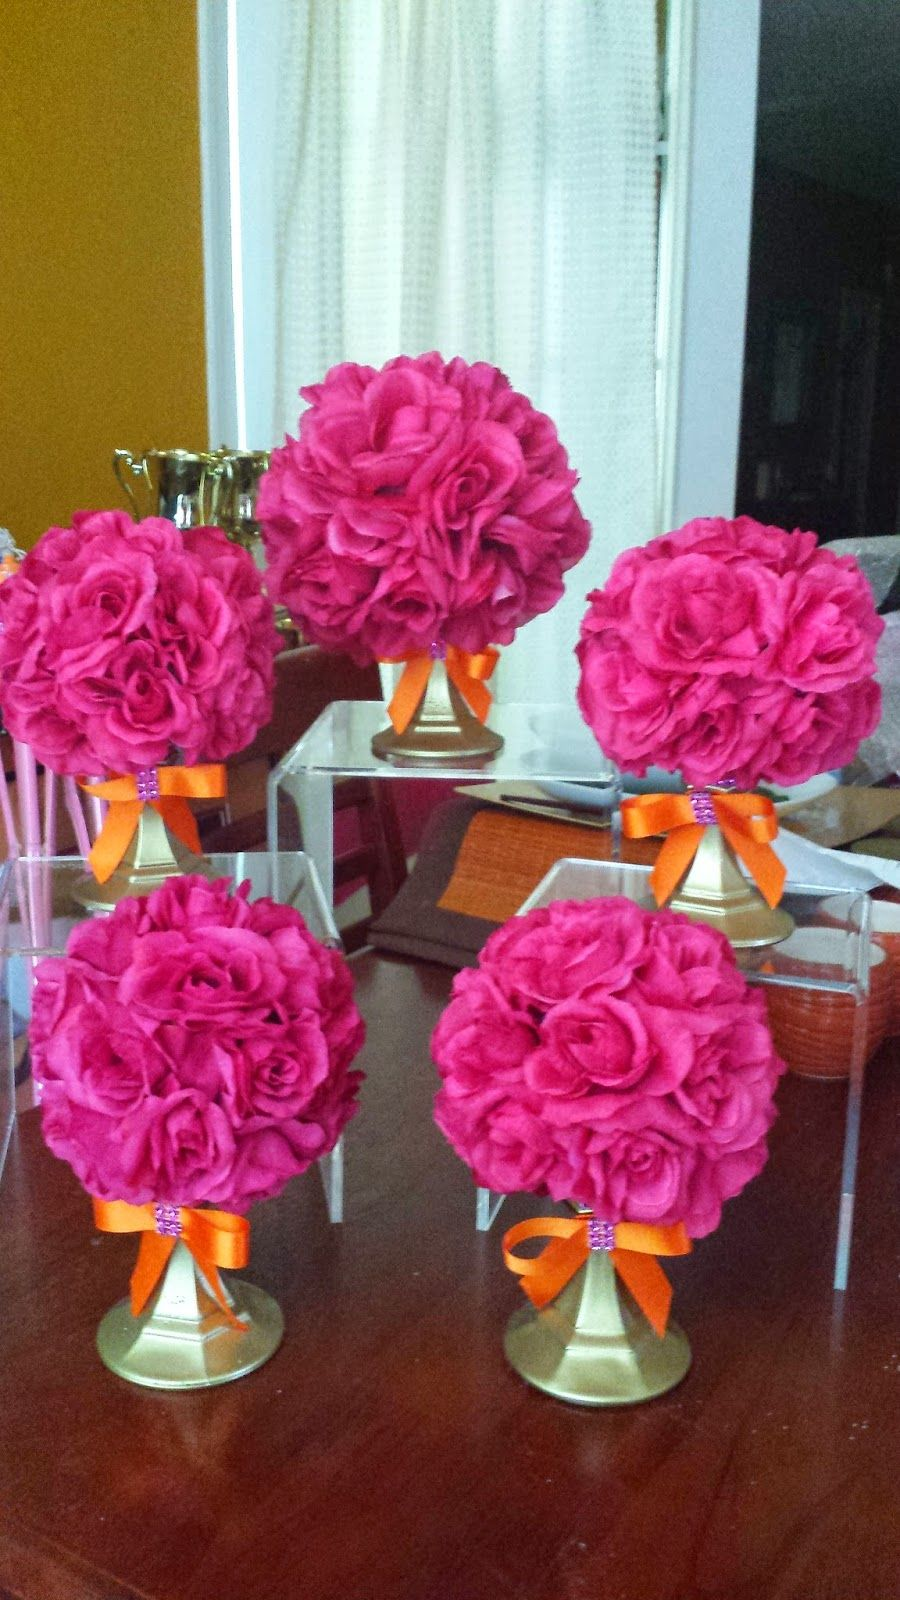 Felicia's Event Design and Planning Orange and Pink Rose